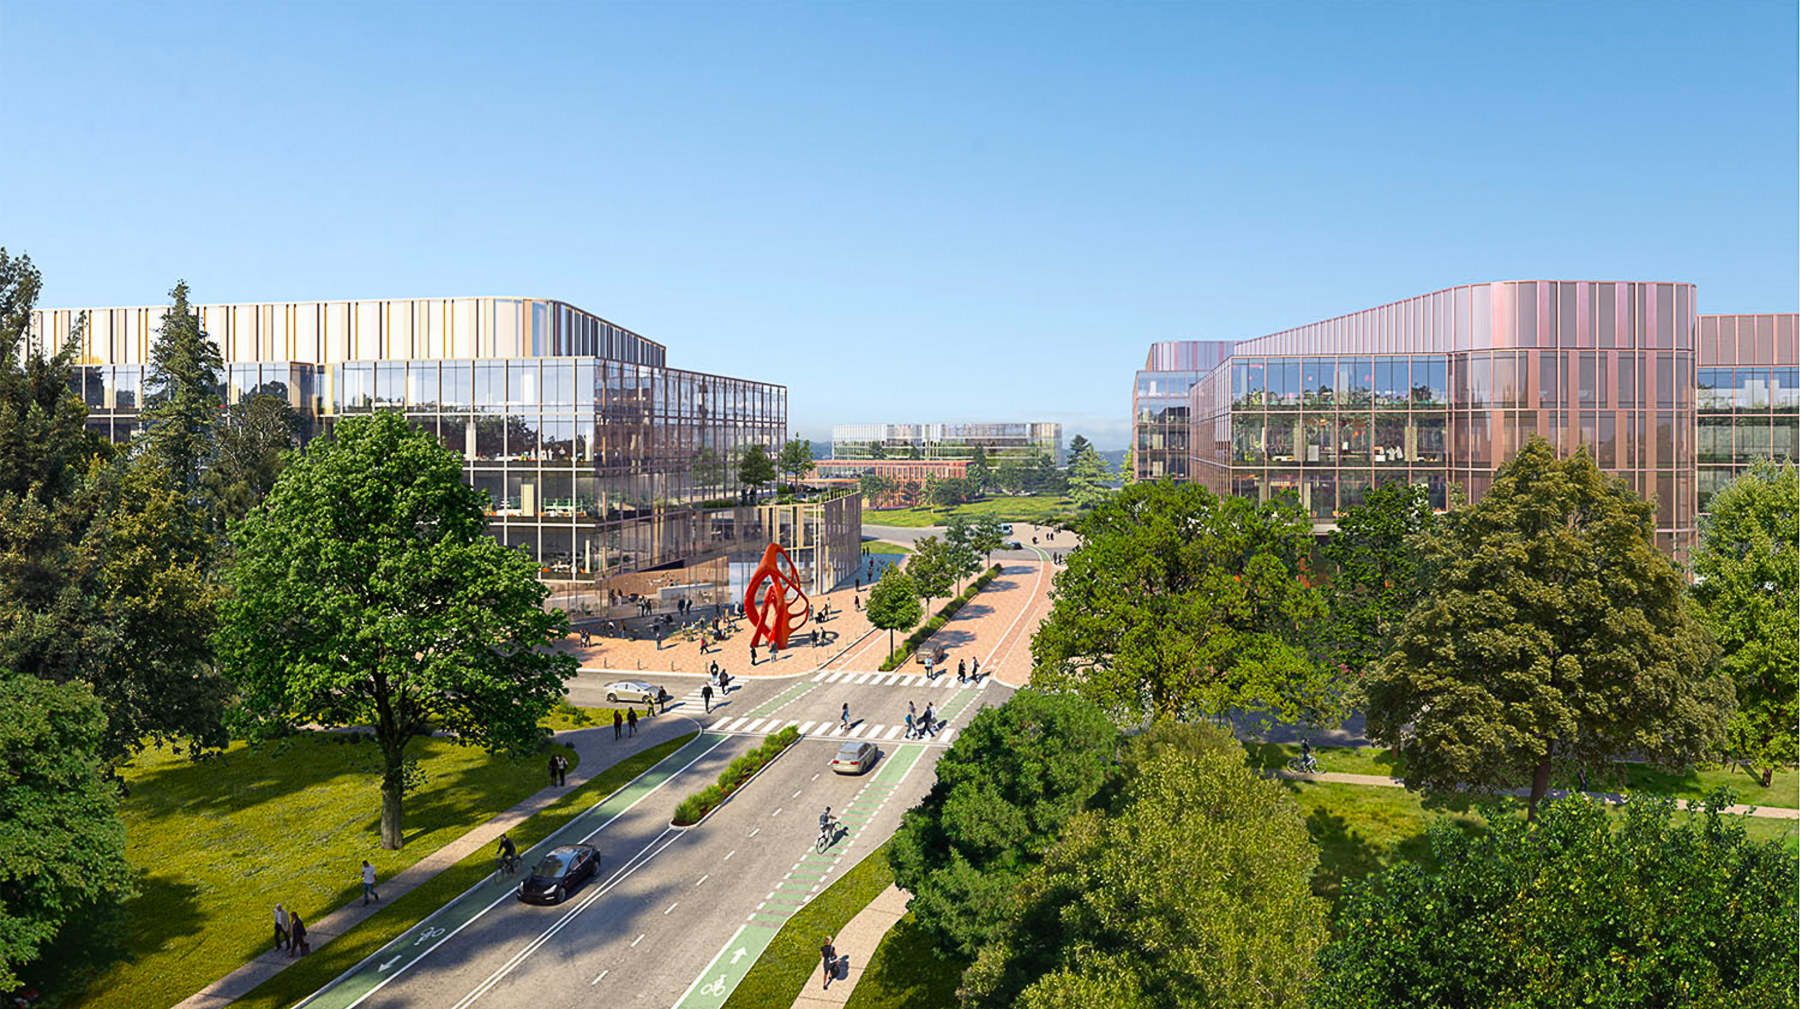 Bayshore Tech Park view of the main road artery entering the campus, design by HOK and rendering by TMRW